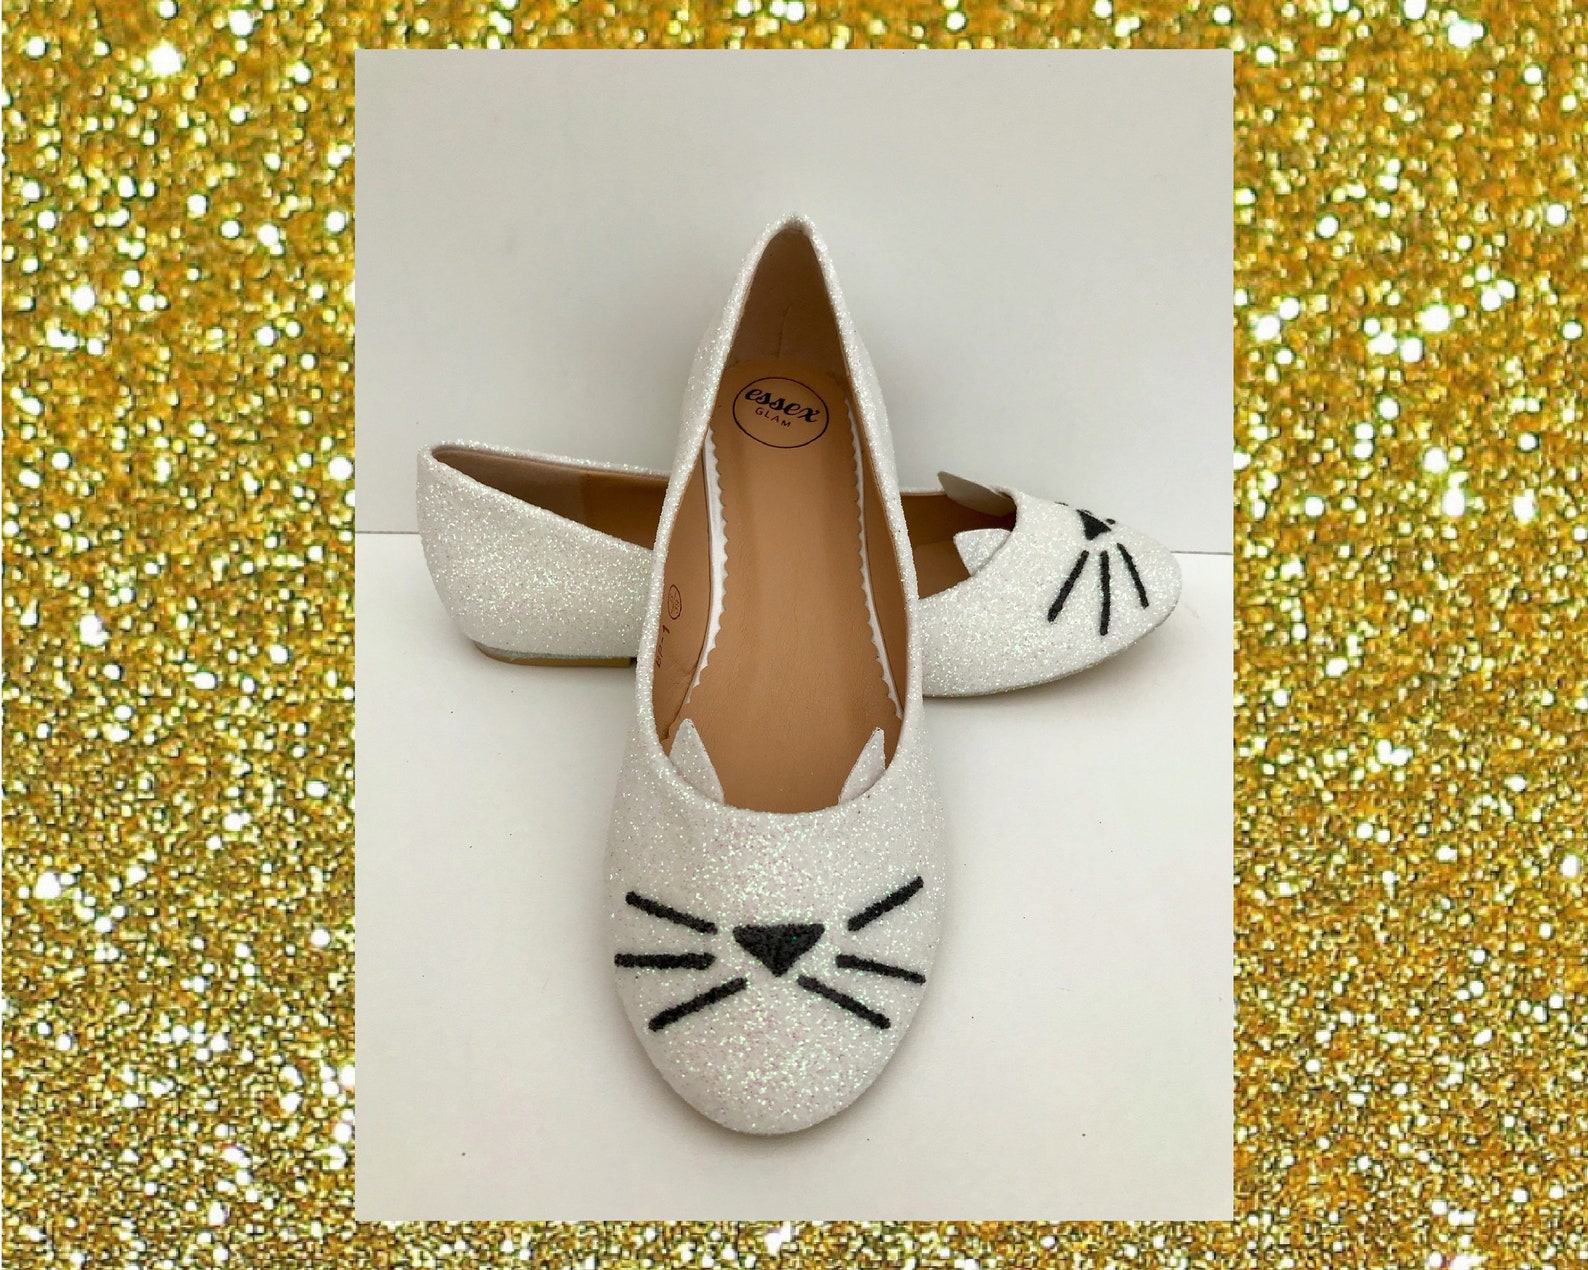 white cat shoes, white glitter flats, cat wedding shoes, cute cat shoes, white ballet flats, flat wedding shoes, wedding shoes f